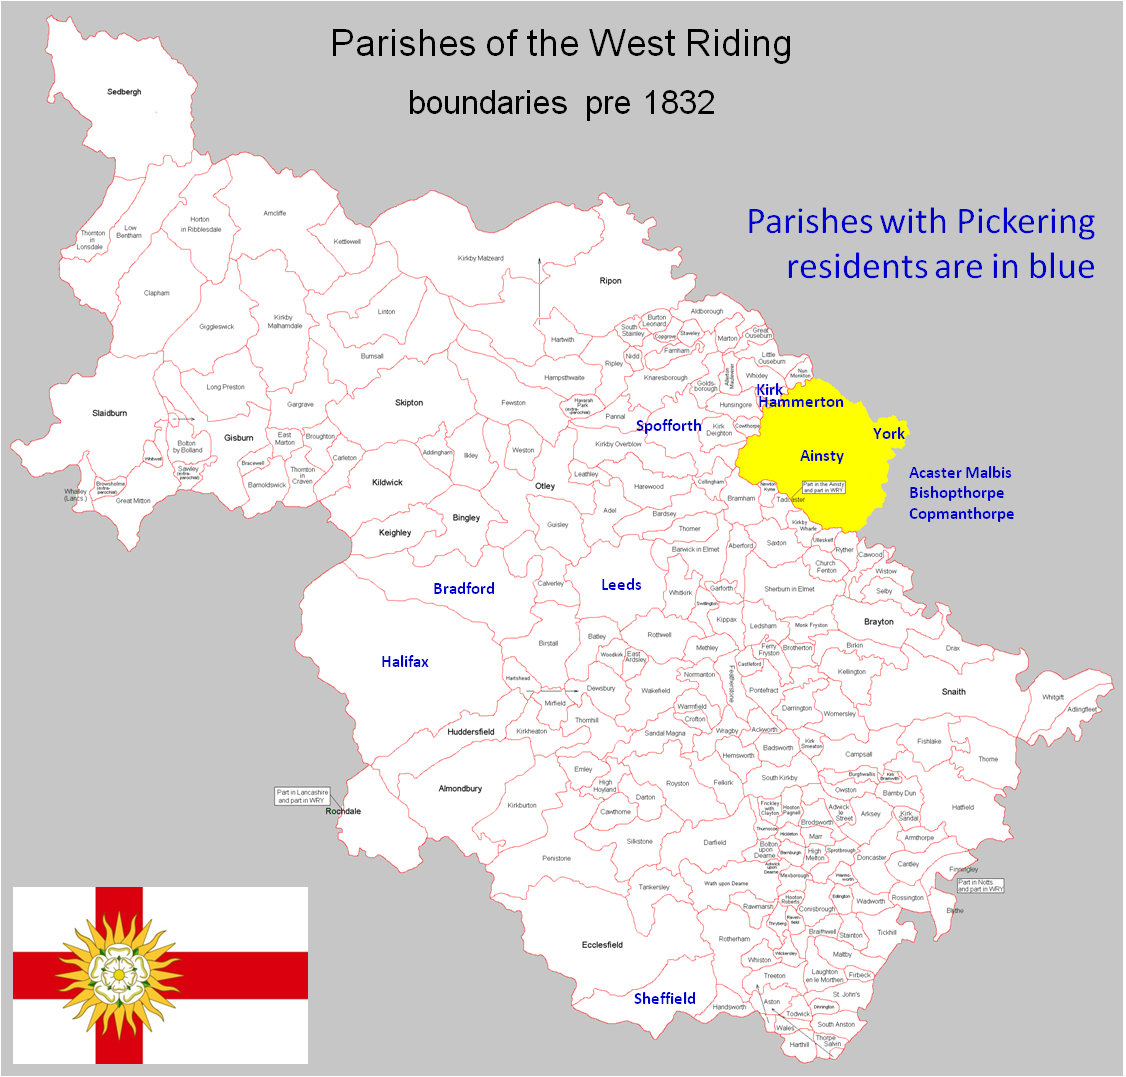 adapted from The Parishes of the West Riding © Colin Hinson